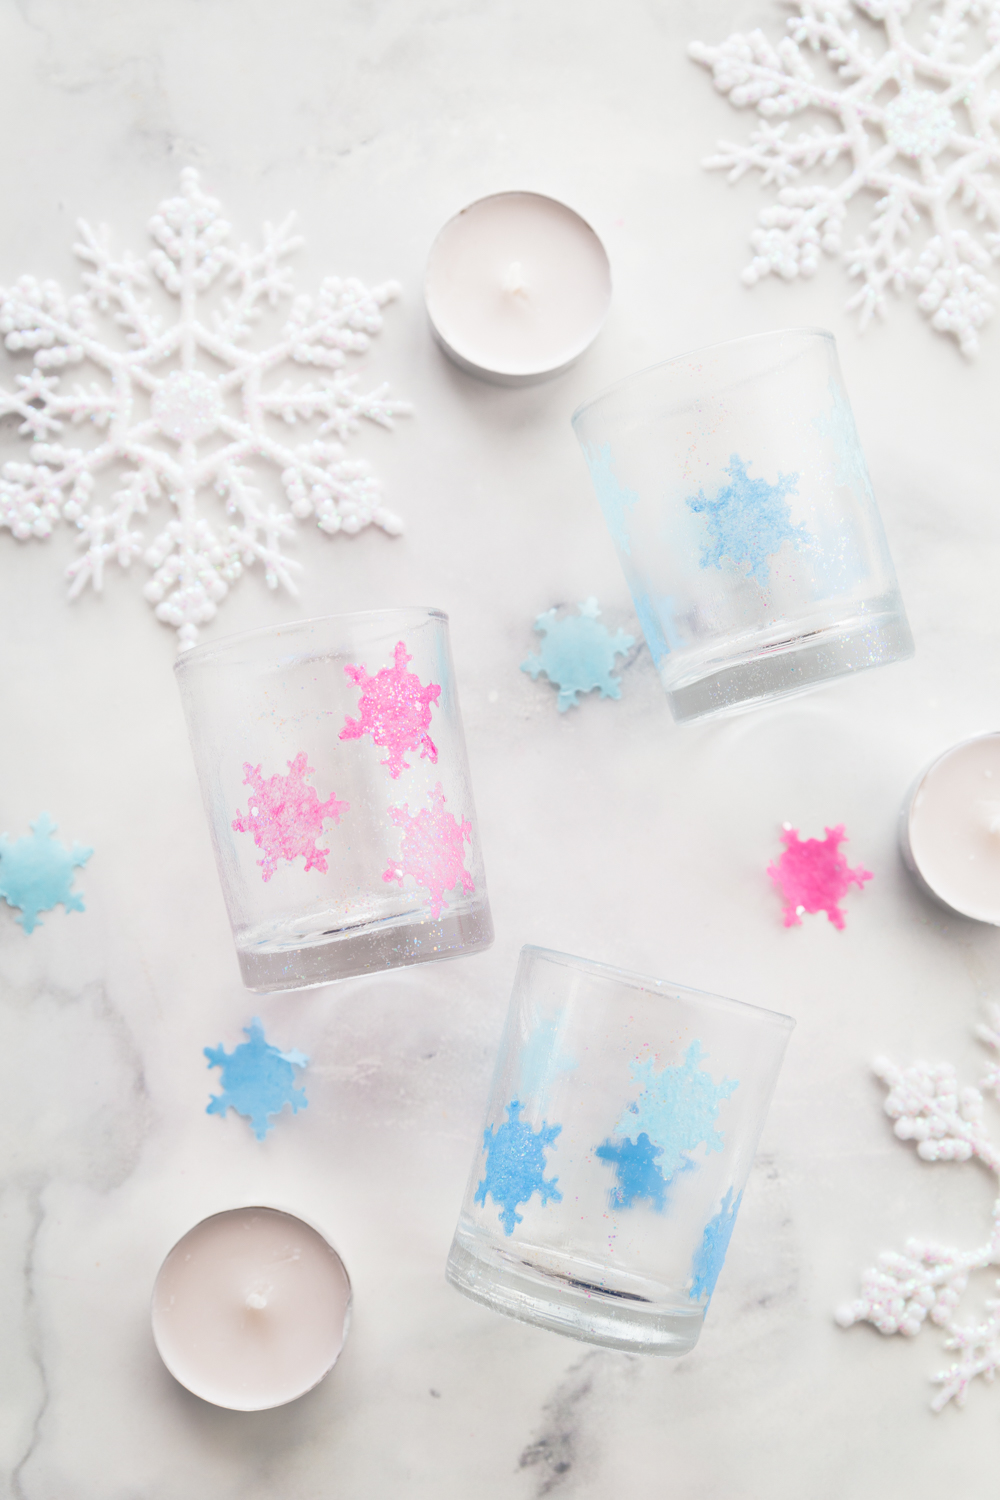 These Tissue Paper Snowflake Luminaries are a perfect and simple holiday craft.